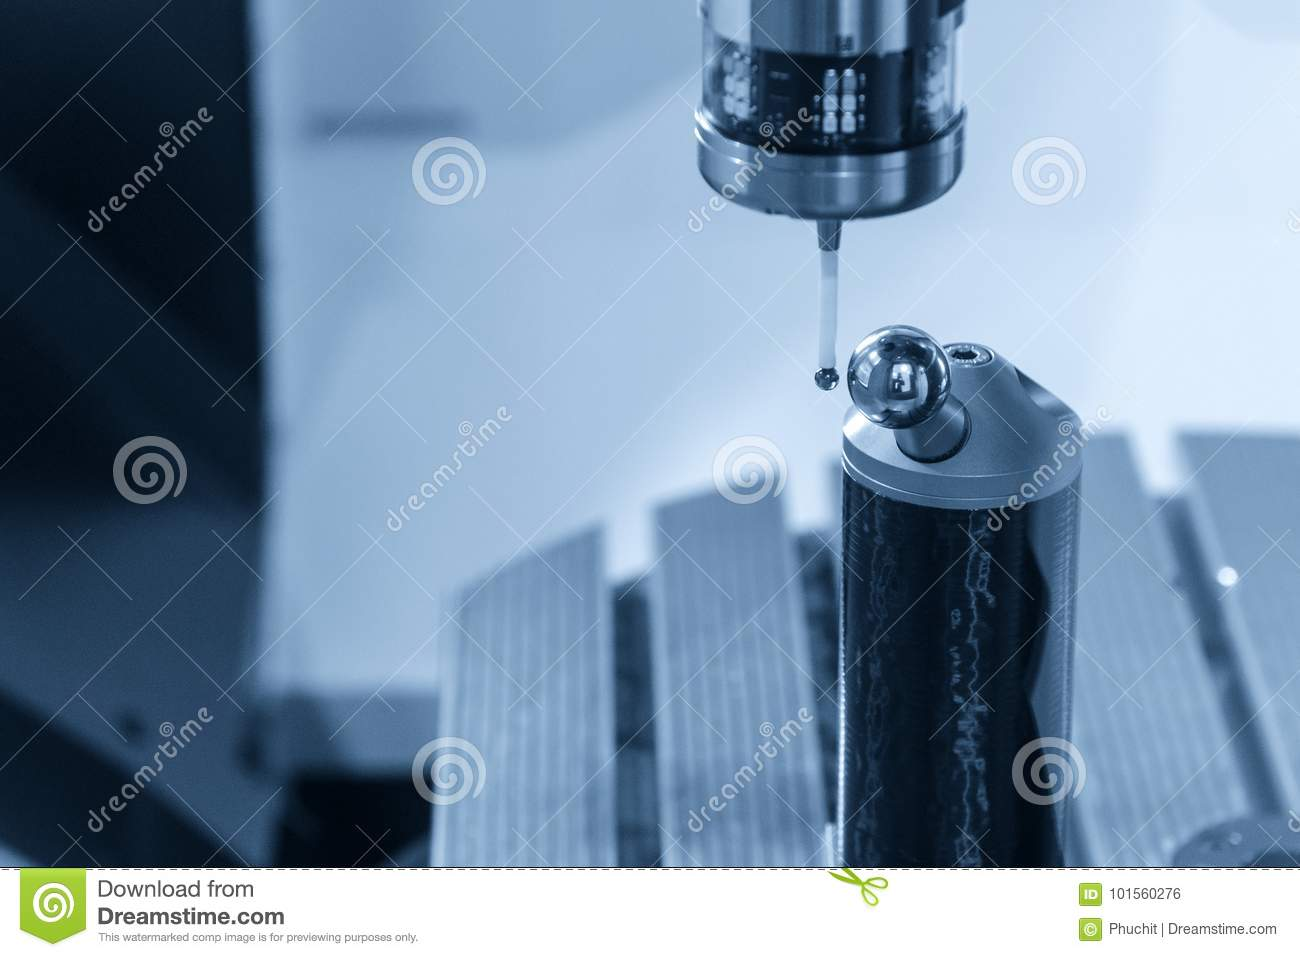 The measurement probe stock photo  Image of inspection - 101560276